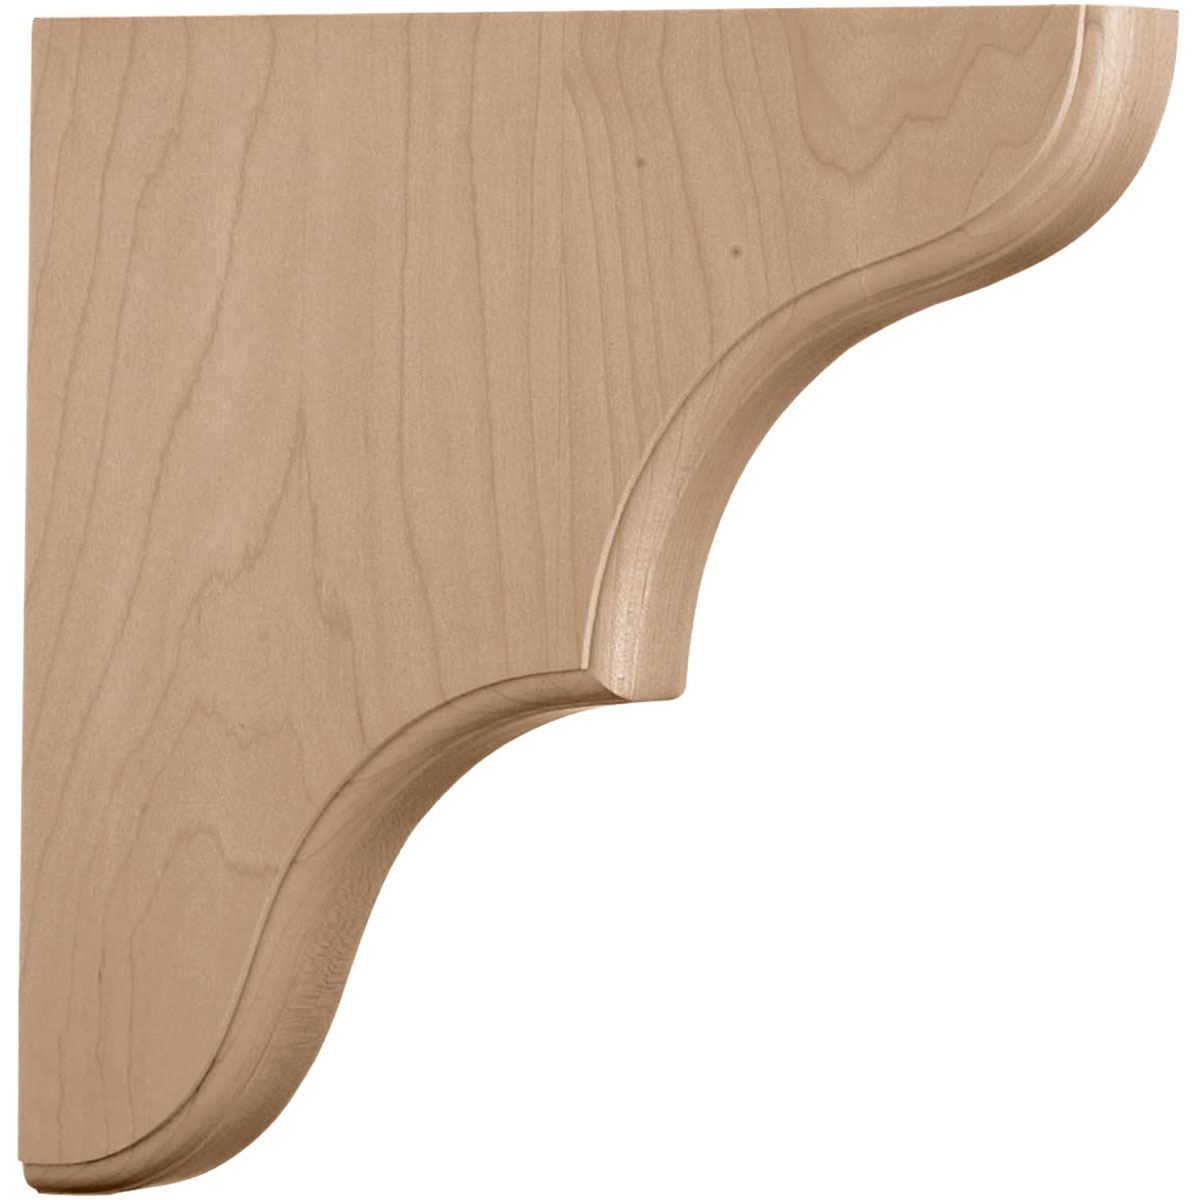 details authentic wood brackets are the perfect choice for supporting